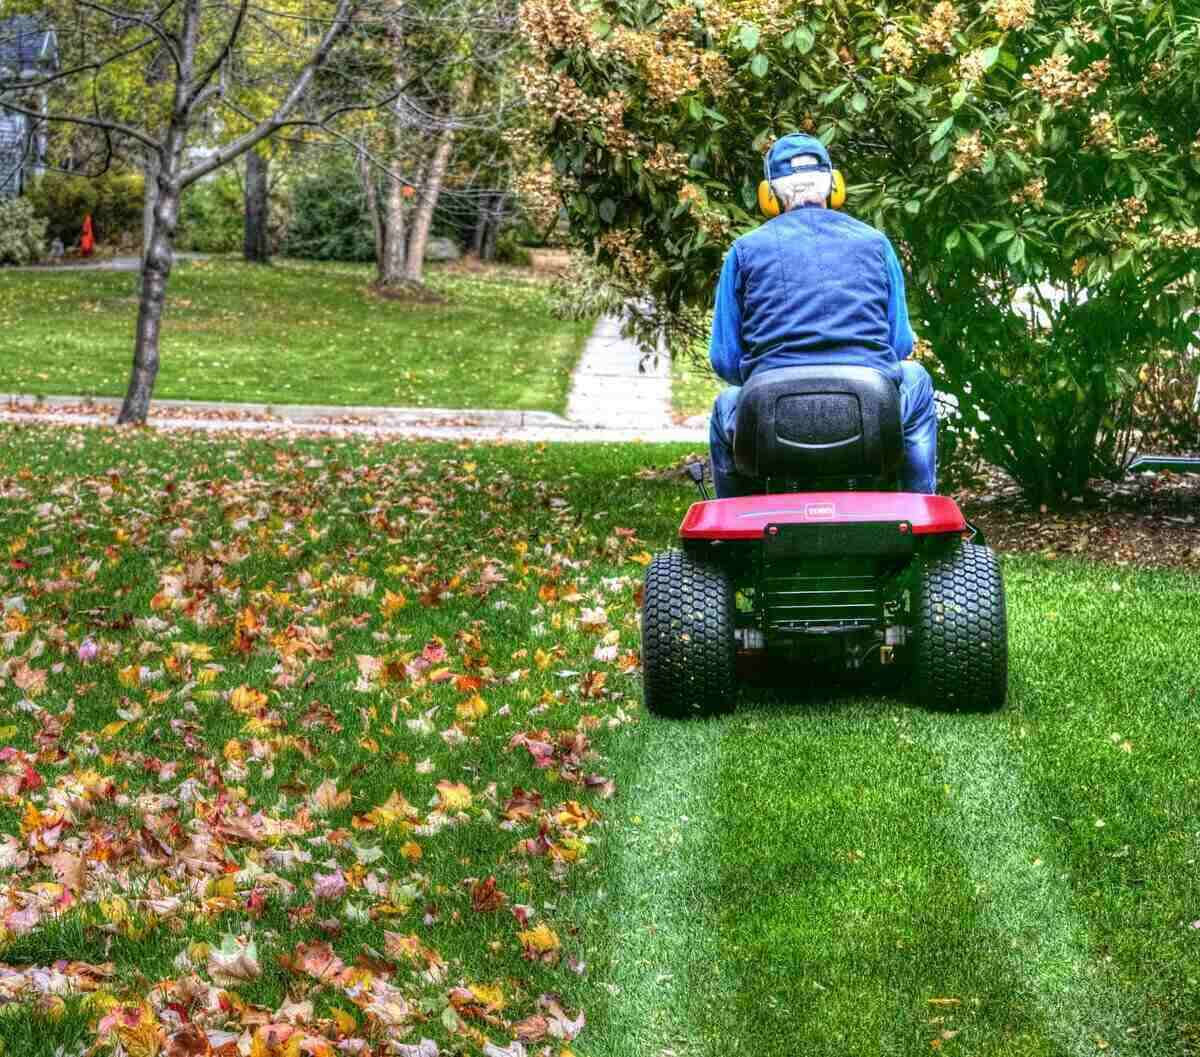 Senior man mowing lawn and mulching leaves using a riding lawn mower